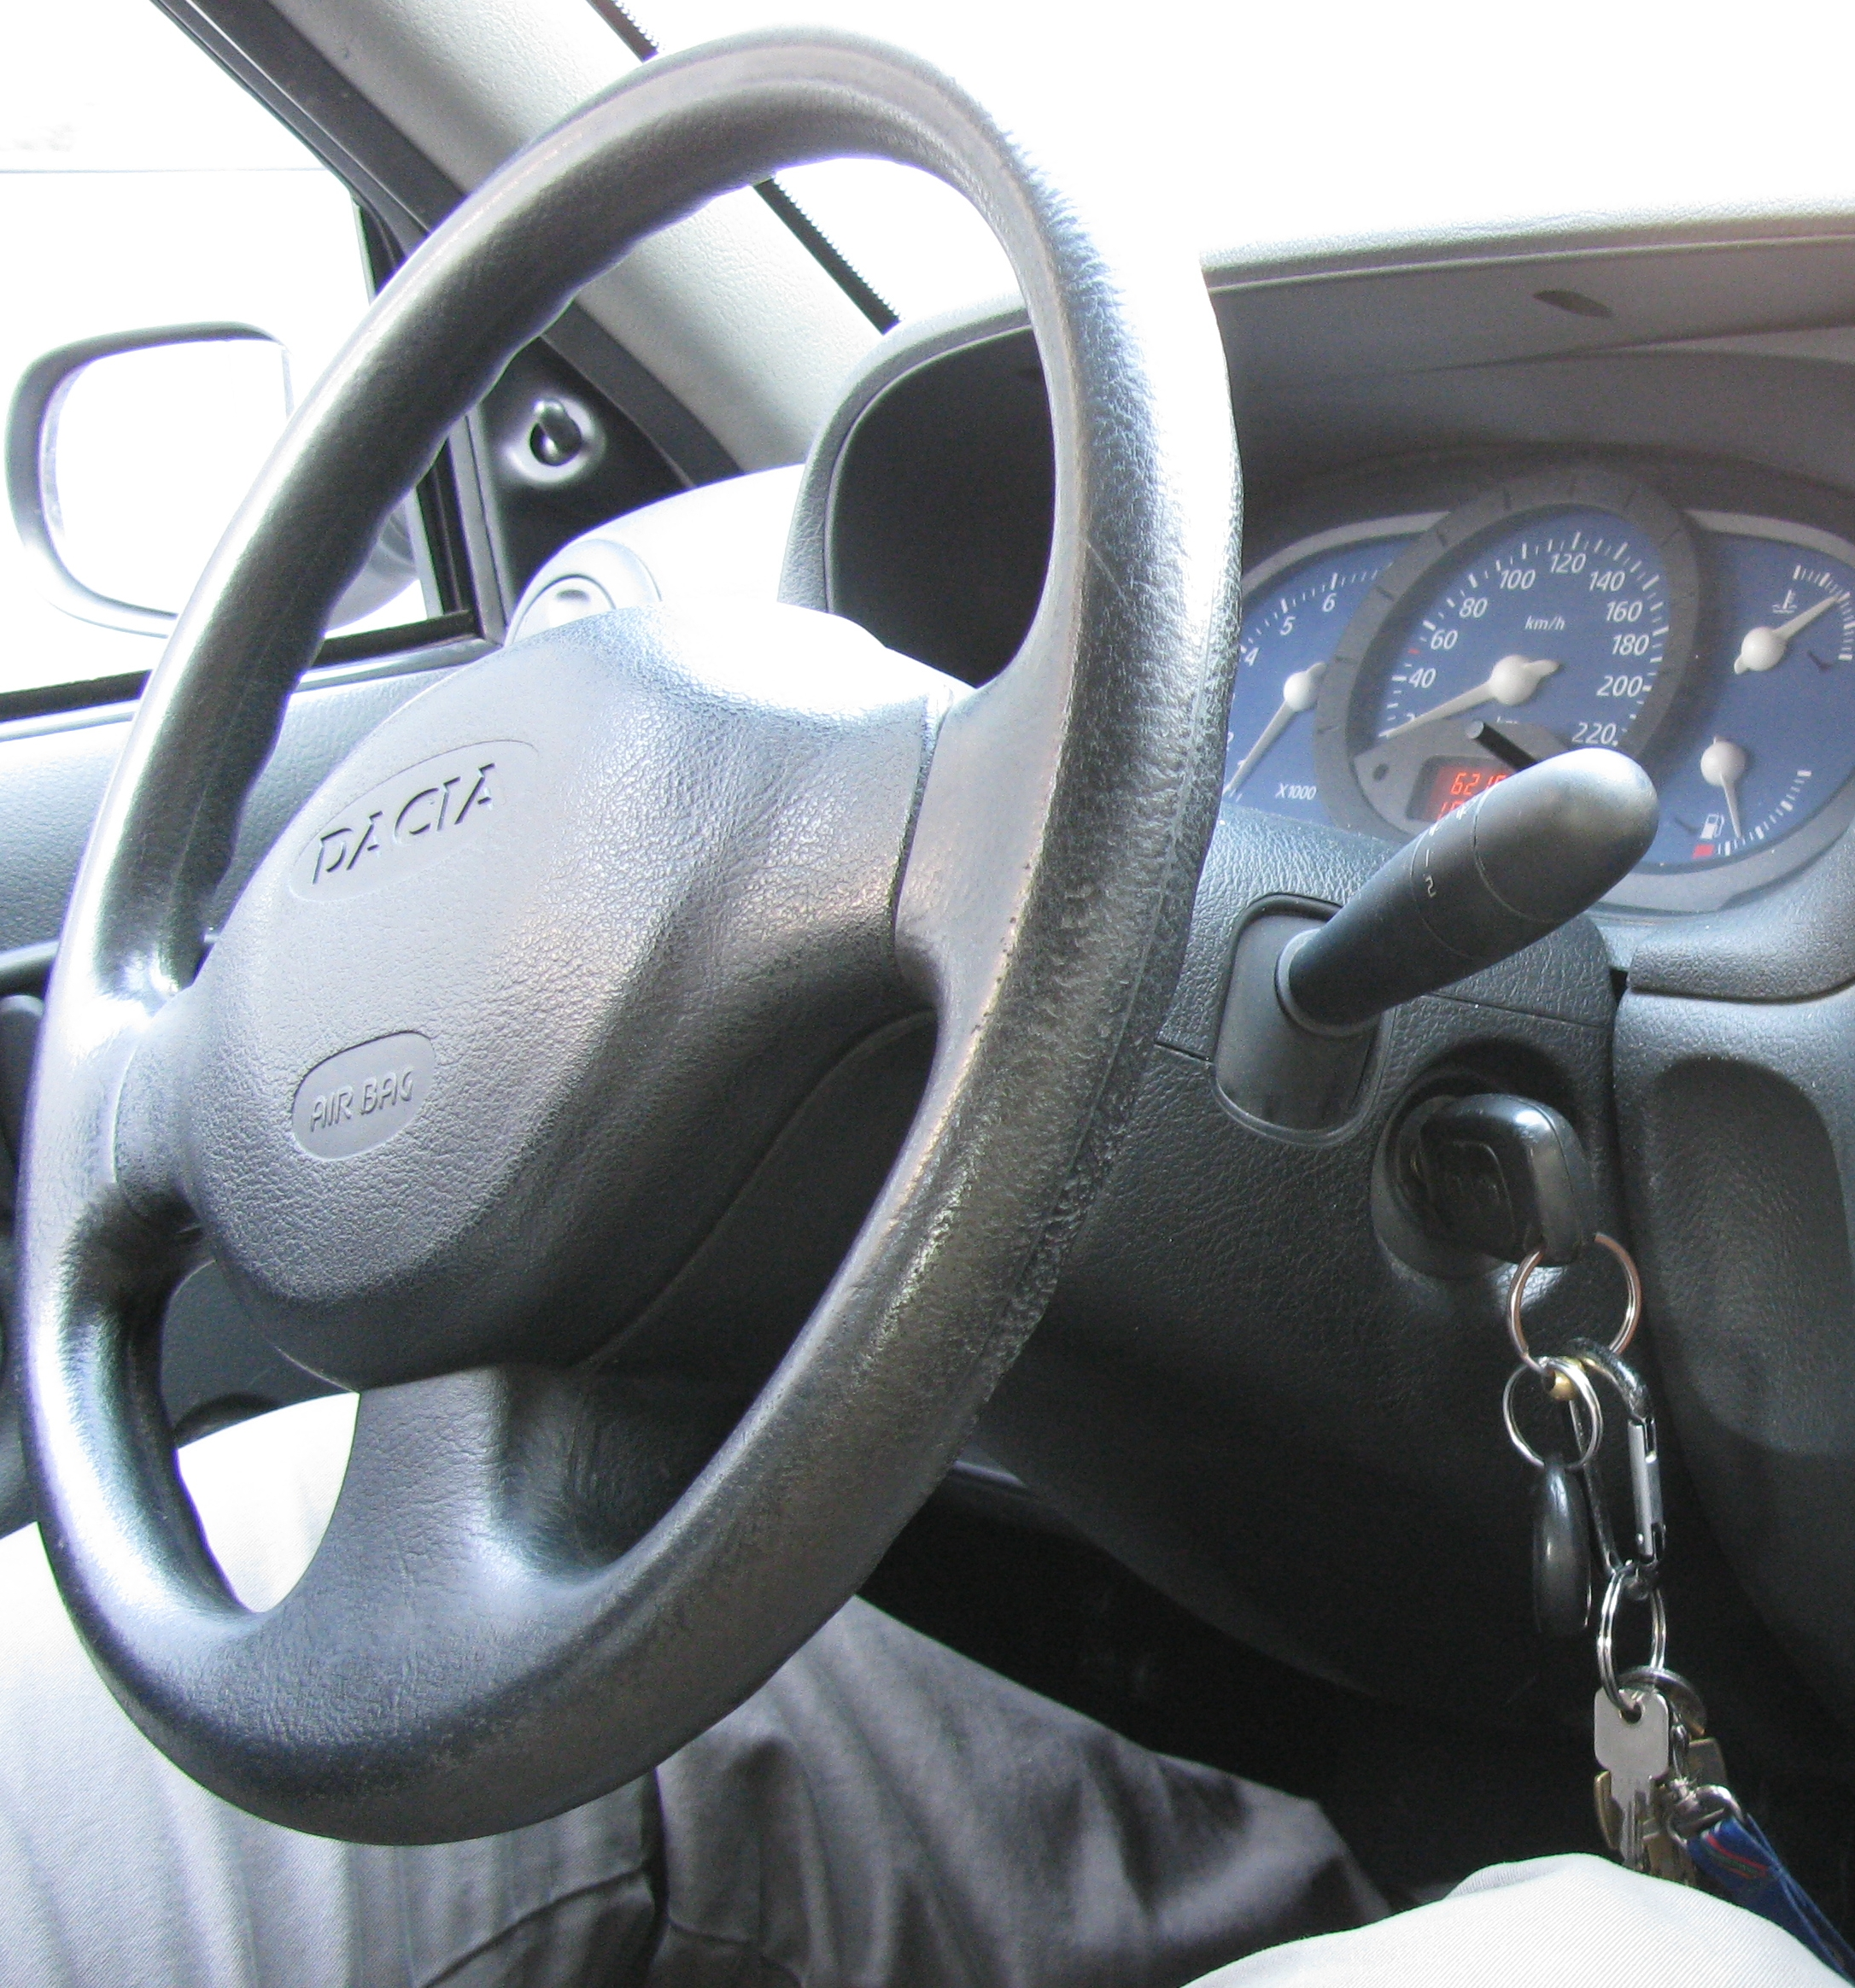 steering wheel and keys in ignition